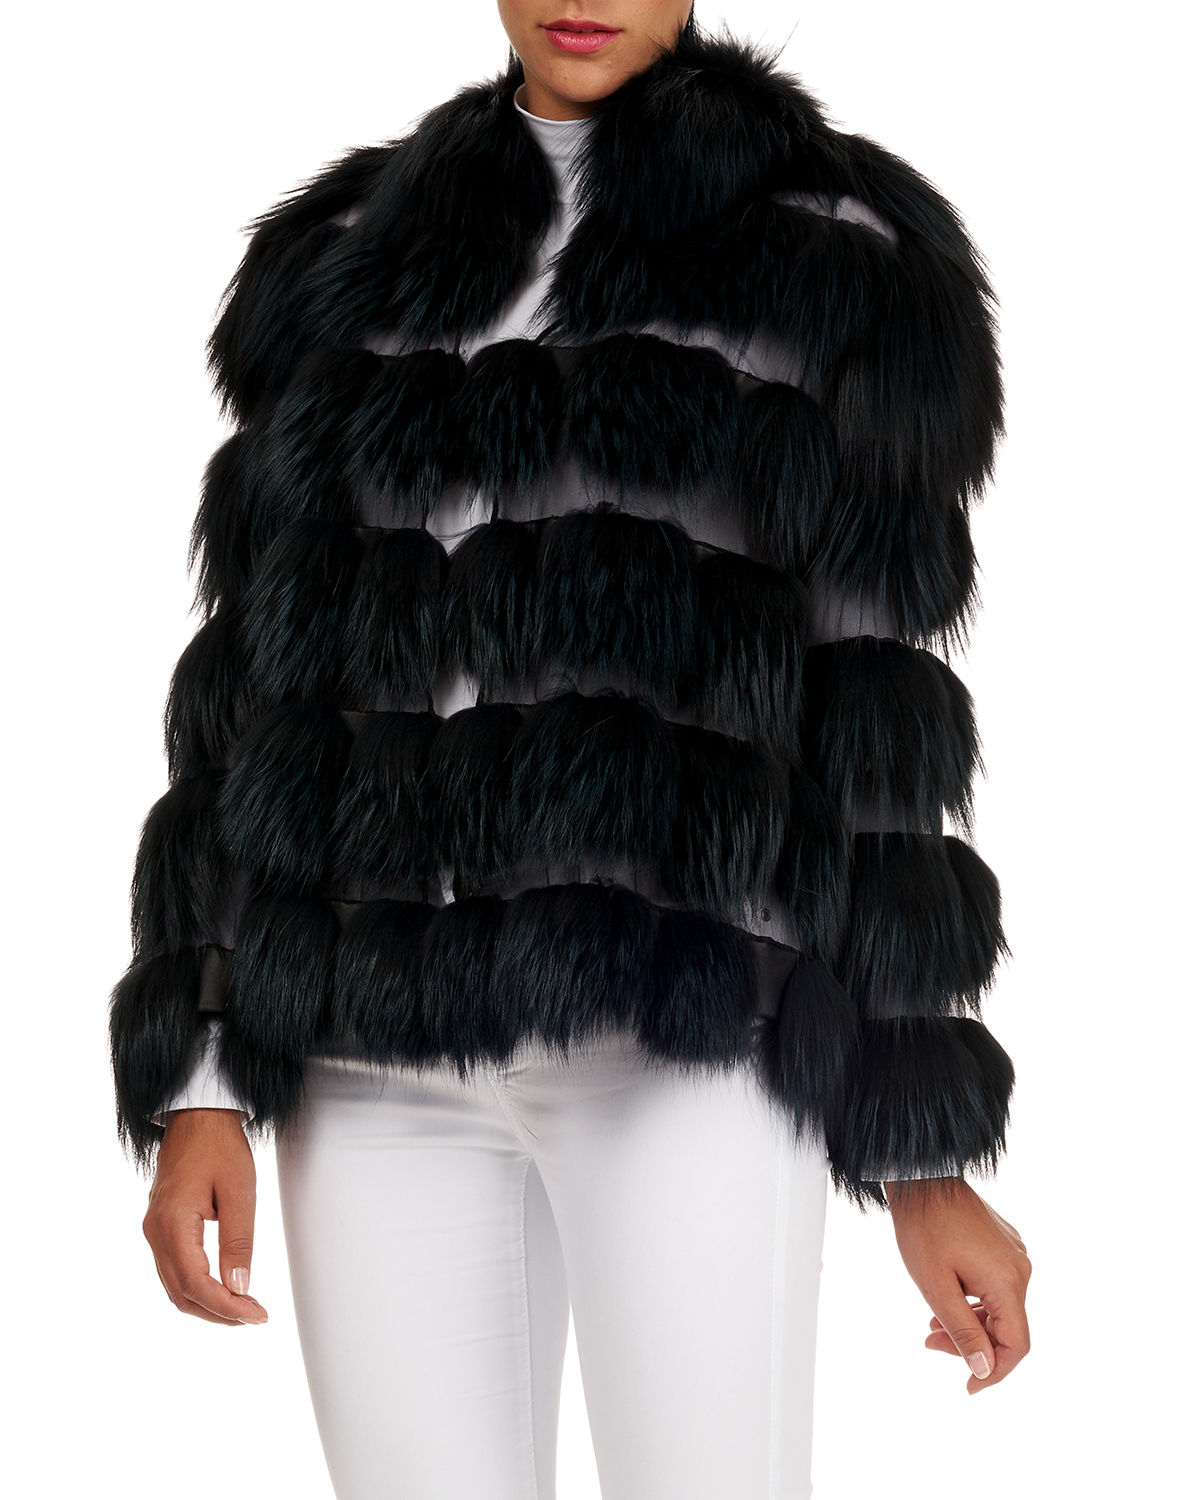 Fox-Fur Jacket with Organza Inserts